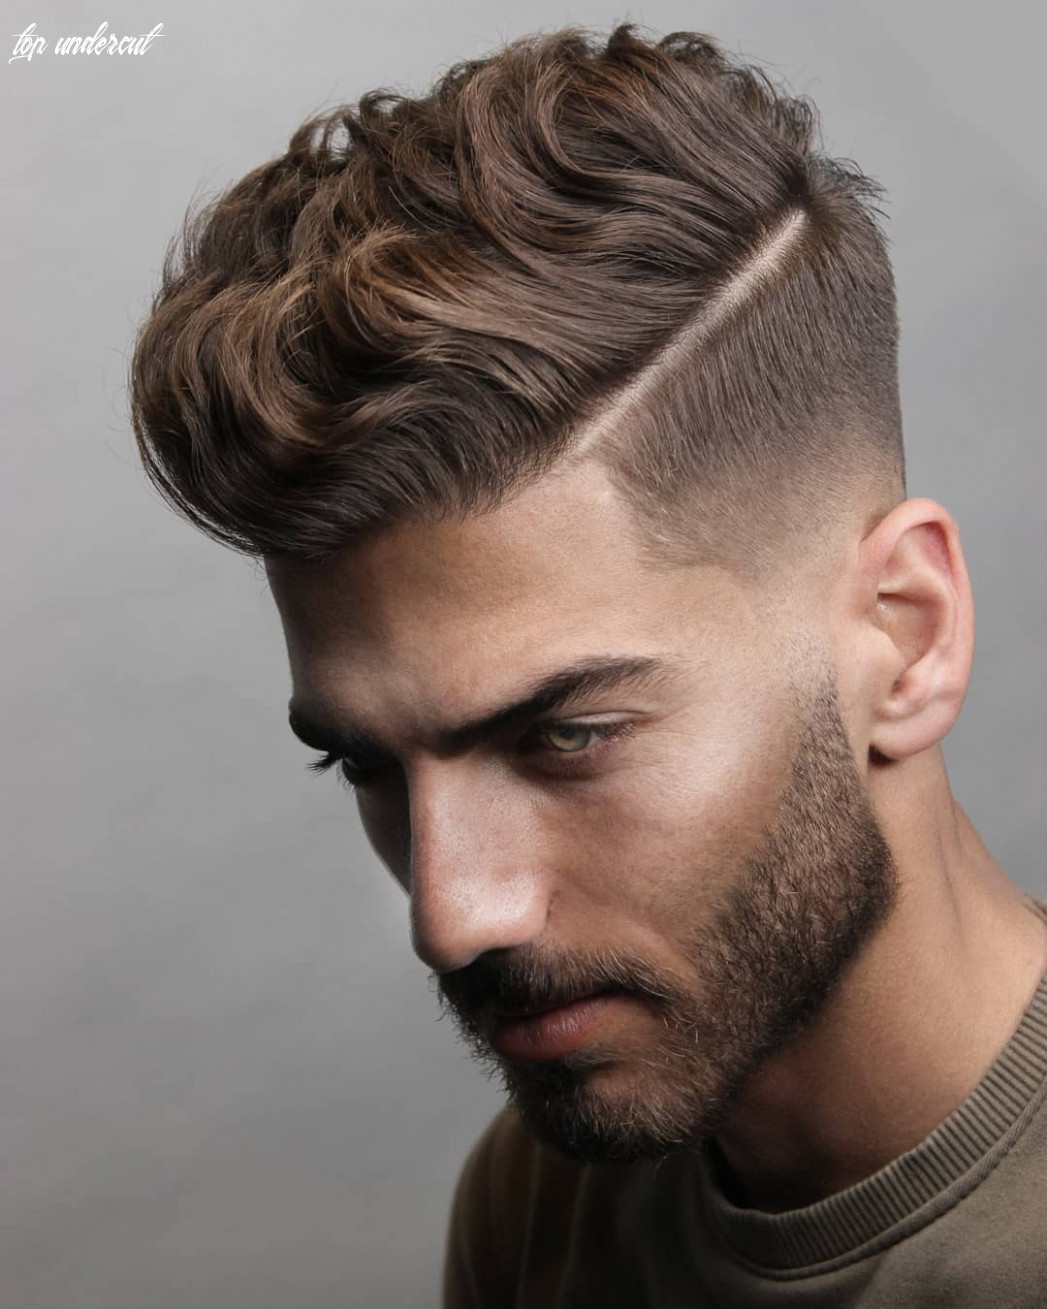 11 short on sides long on top haircuts for men | man haircuts top undercut